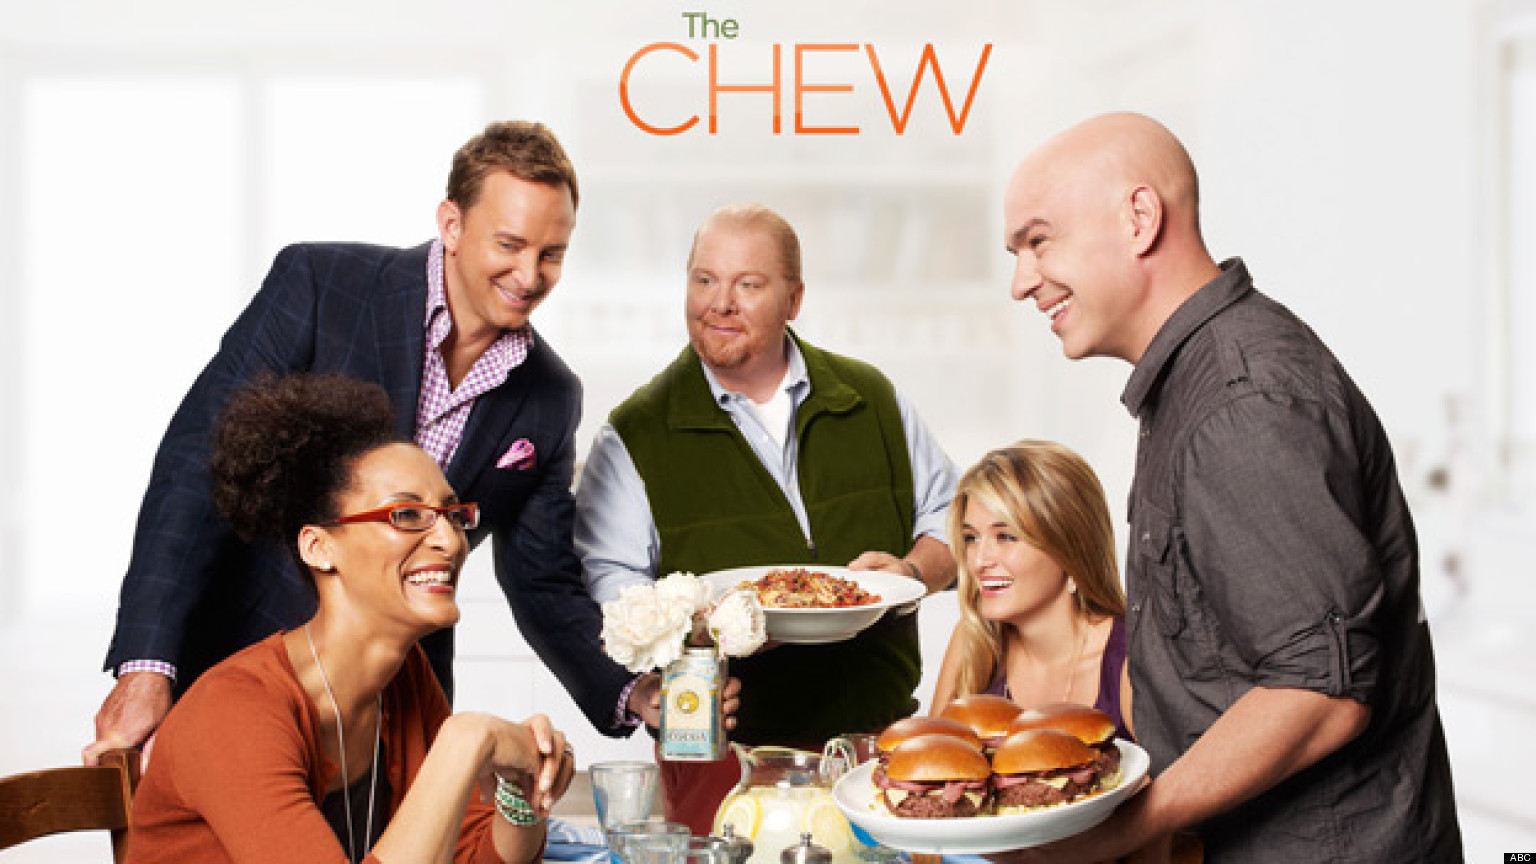 The Chew Cast the chew' enjoys highest ratings in show's history | huffpost